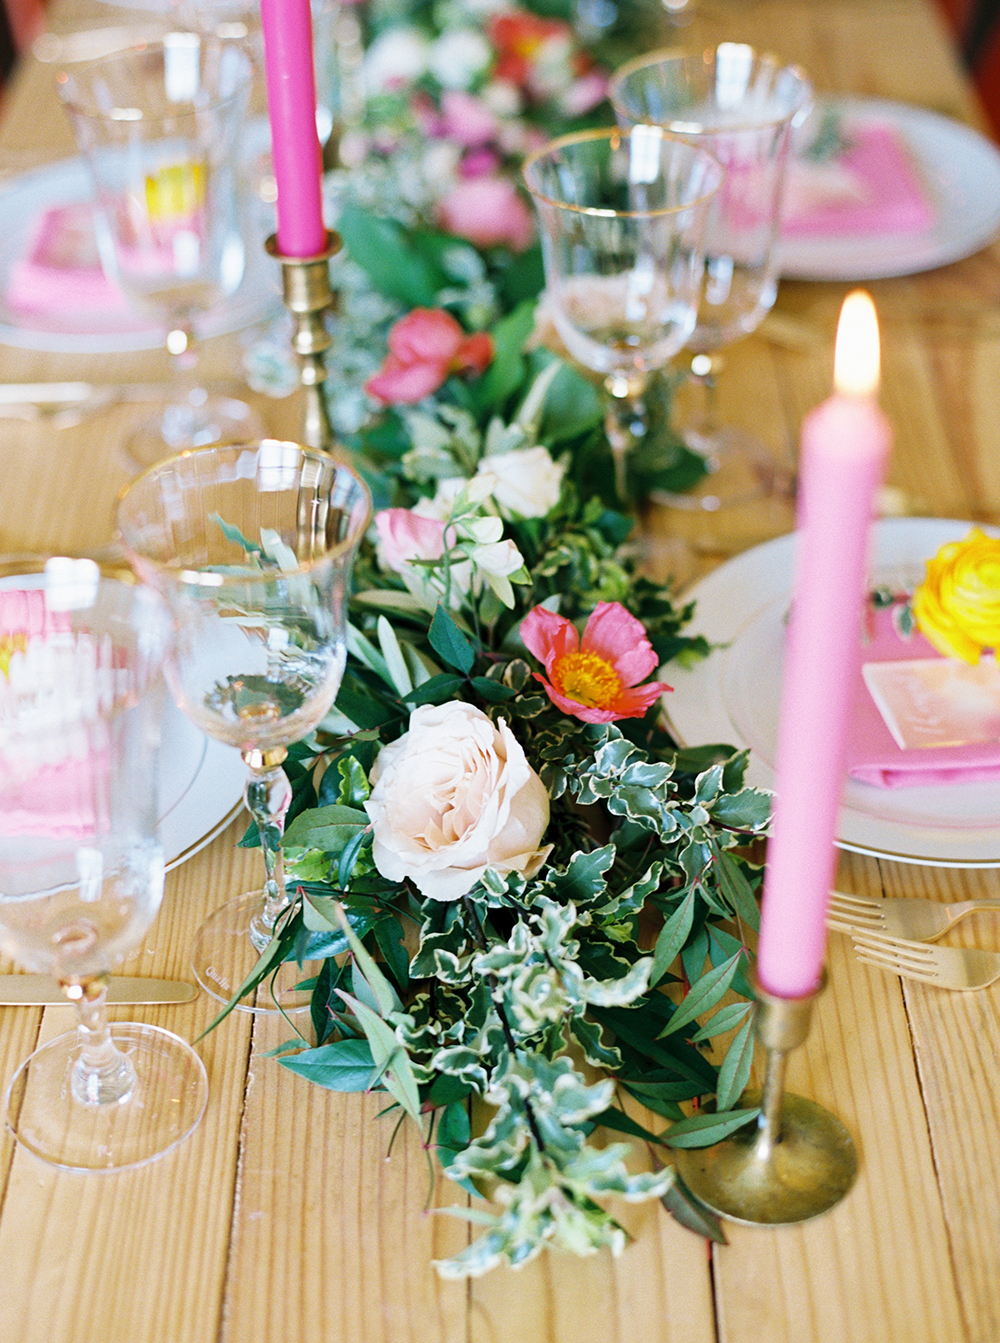 greenery table runners - photo by Jessica Gold Photography http://ruffledblog.com/vibrant-summer-wedding-inspiration-with-fun-colors